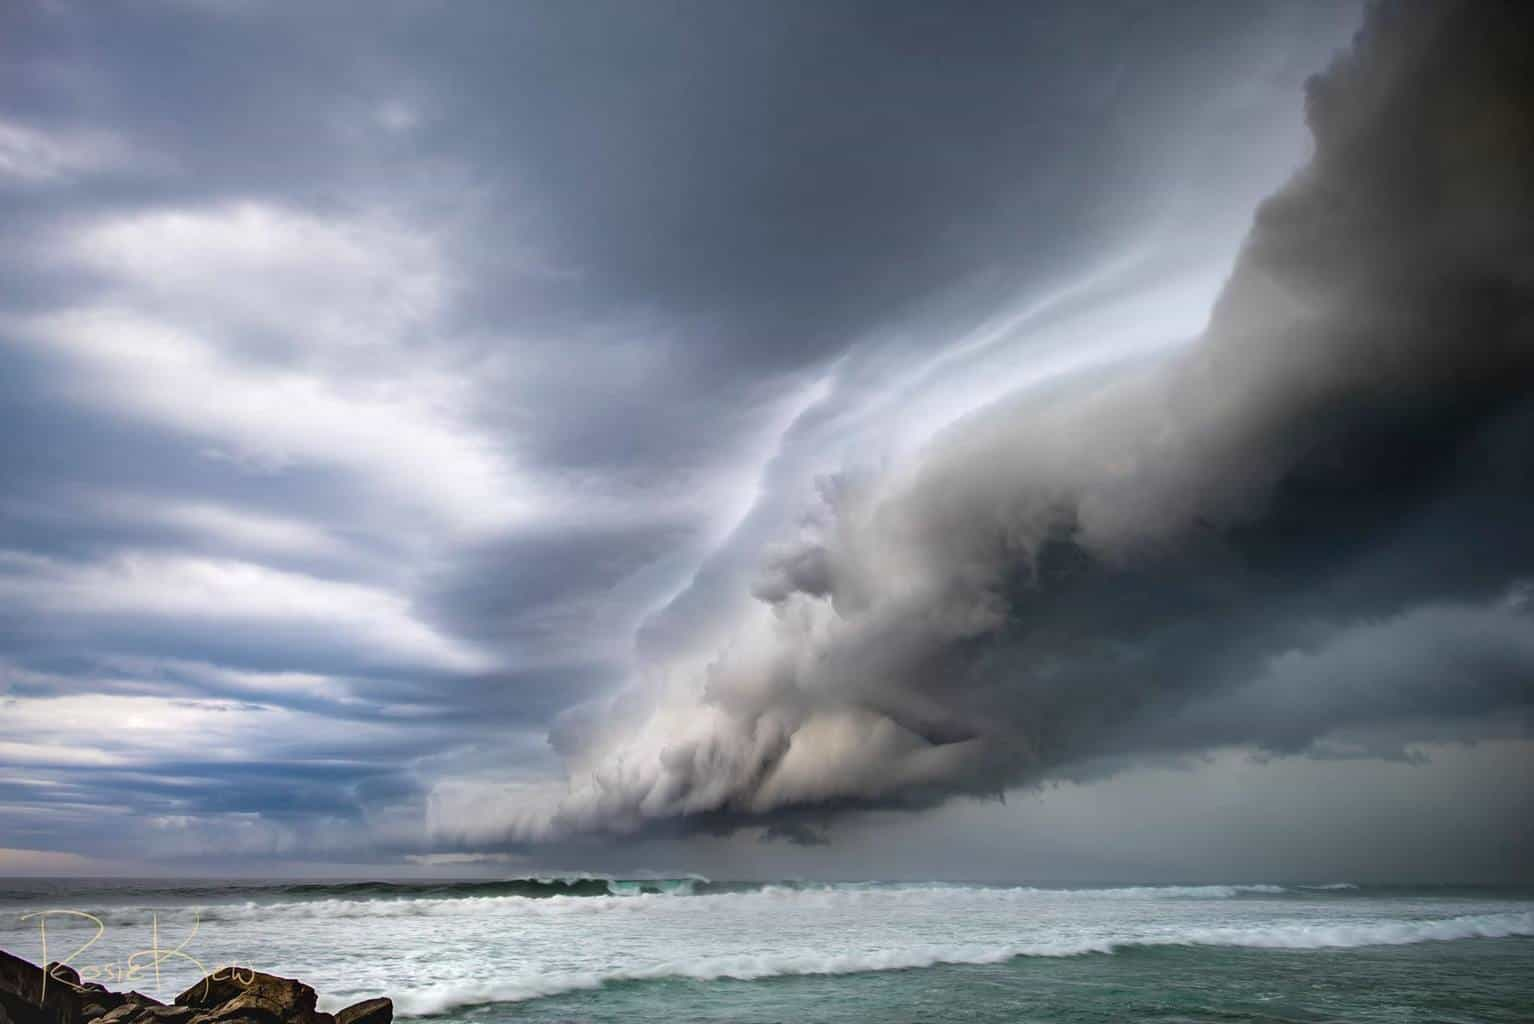 23rd January 2016 saw a lovely shelf cloud wander over Ballina Northern NSW Australia with the passage of a strong cold front moving up the east coast. It was spectacular as it passed over with a theatre curtain like appearance to the cloud...